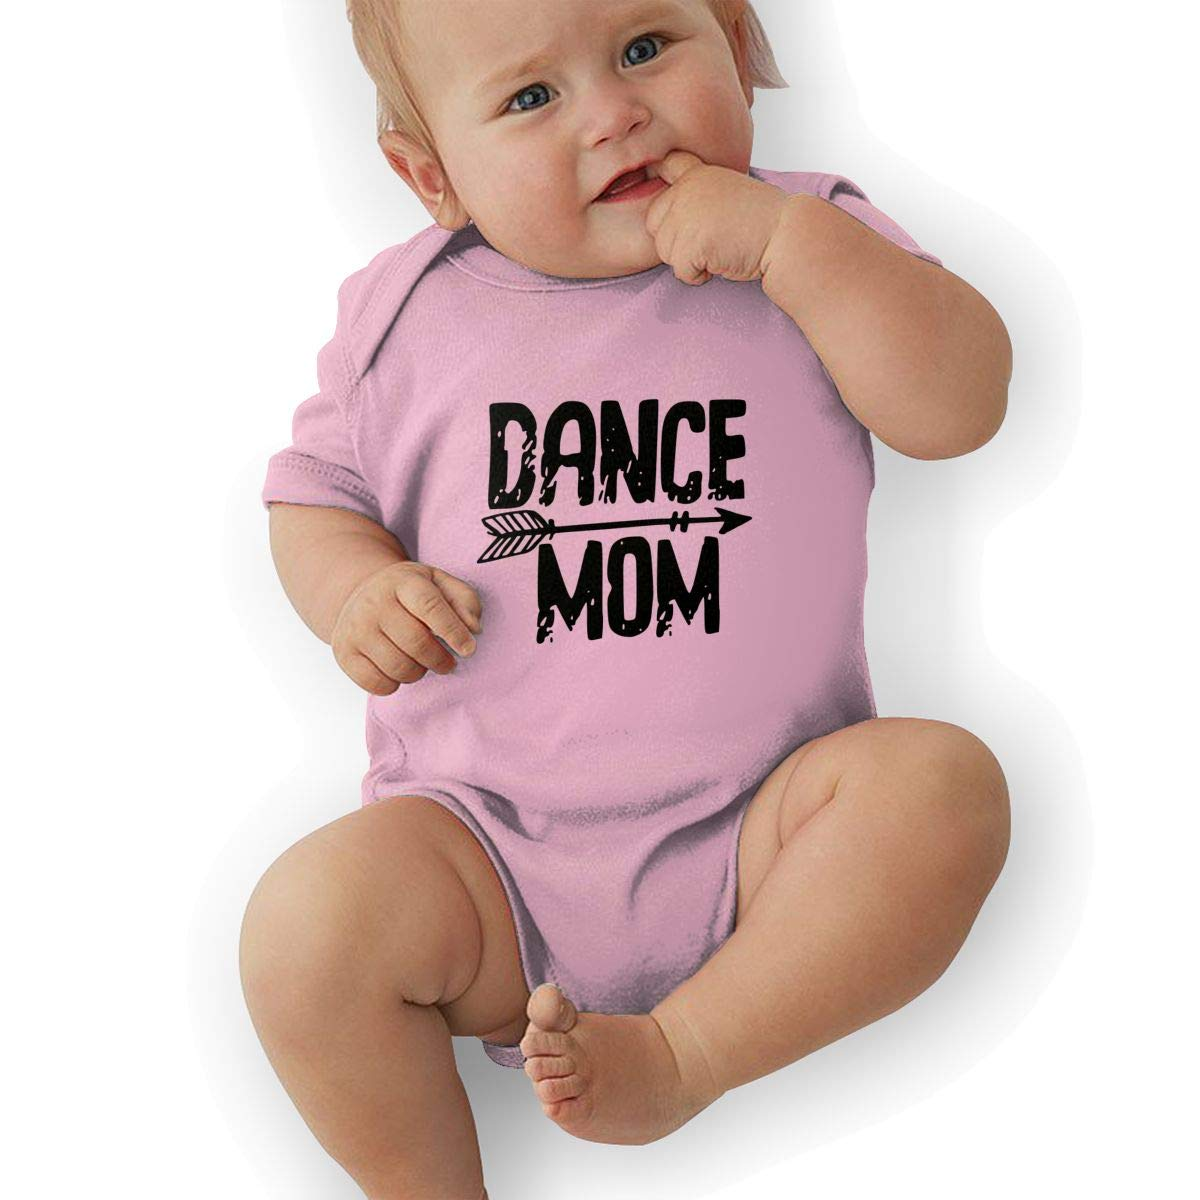 Newborn Baby Boys Bodysuit Short-Sleeve Onesie Dance Mom Print Jumpsuit Winter Pajamas